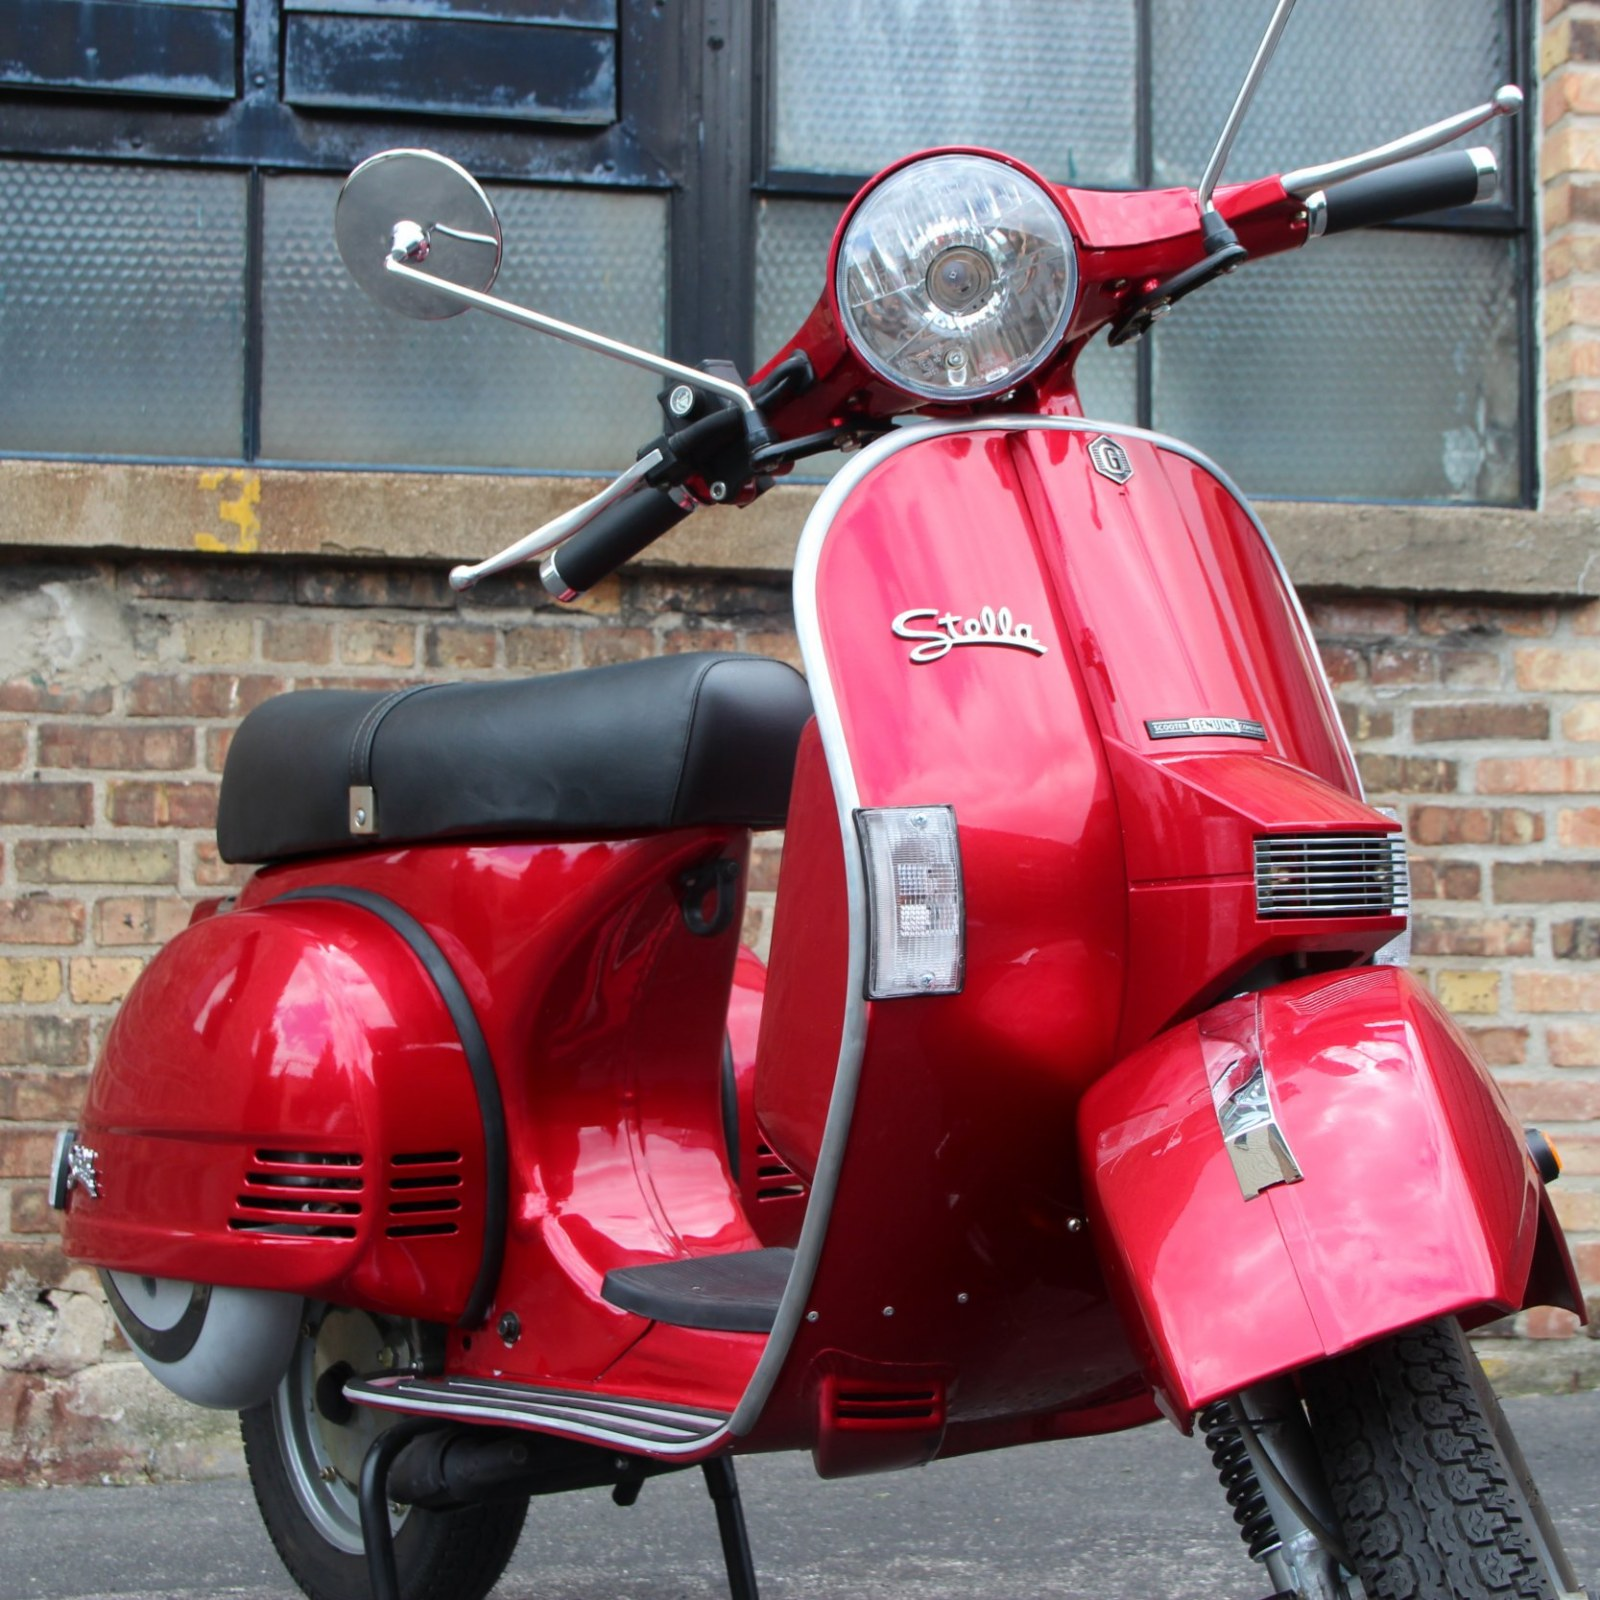 Big Boy Toys: Born to be Wild on a Stella Automatic 125 Scooter